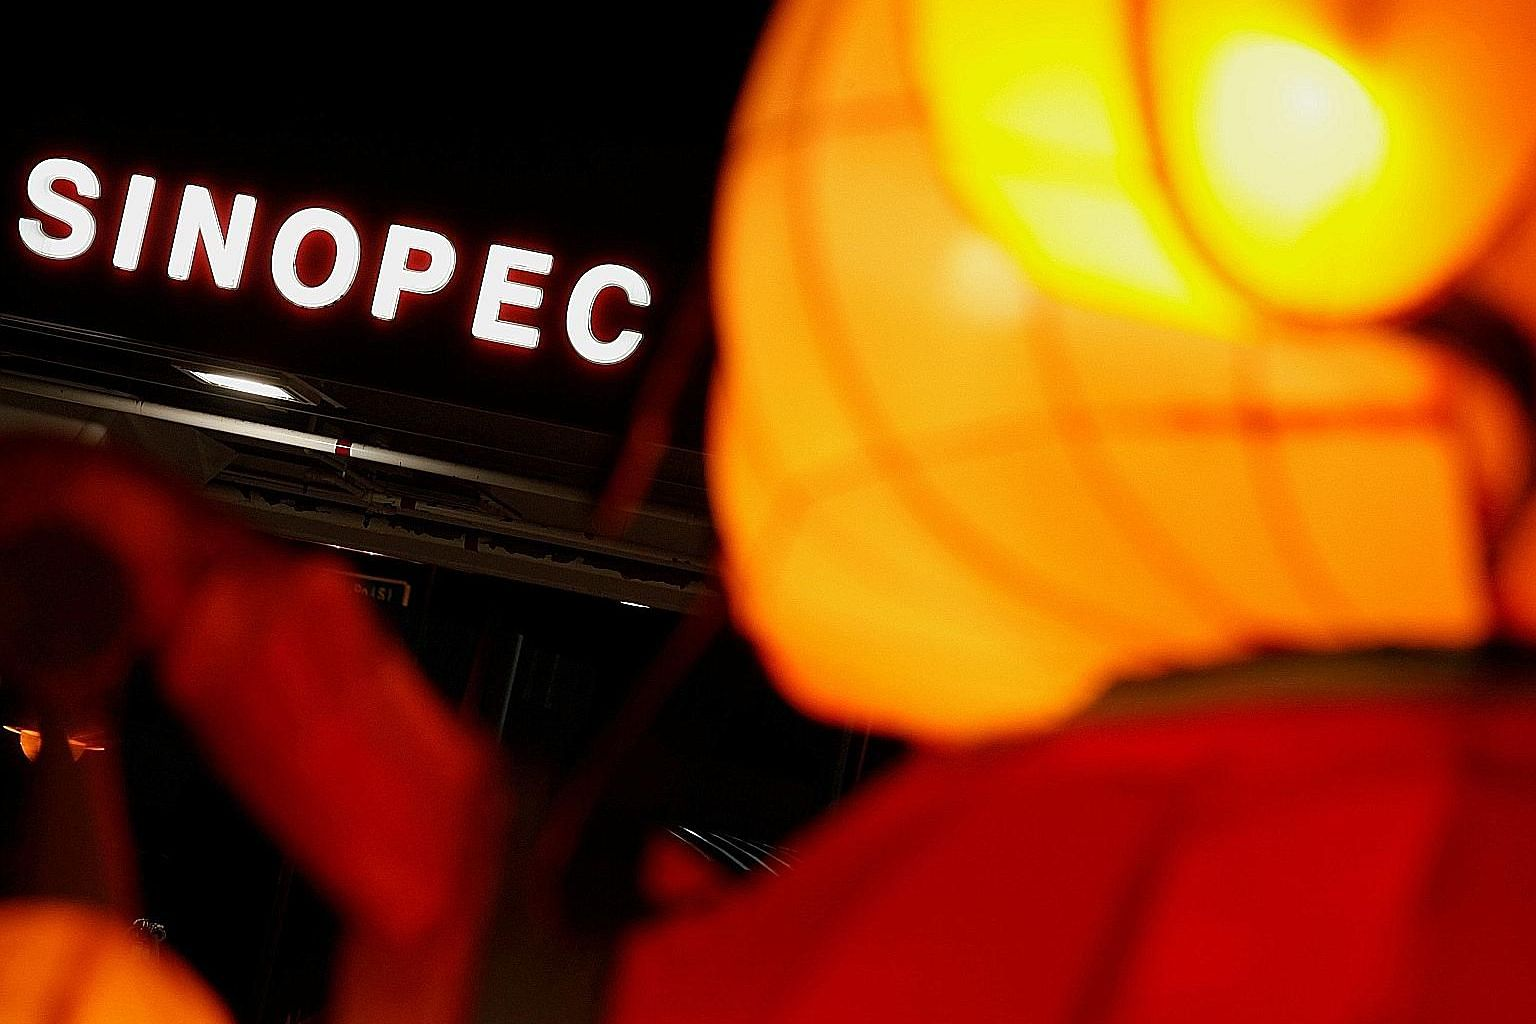 Sinopec's retail operations include more than 30,500 fuel stations under its own brand as well as convenience stores.